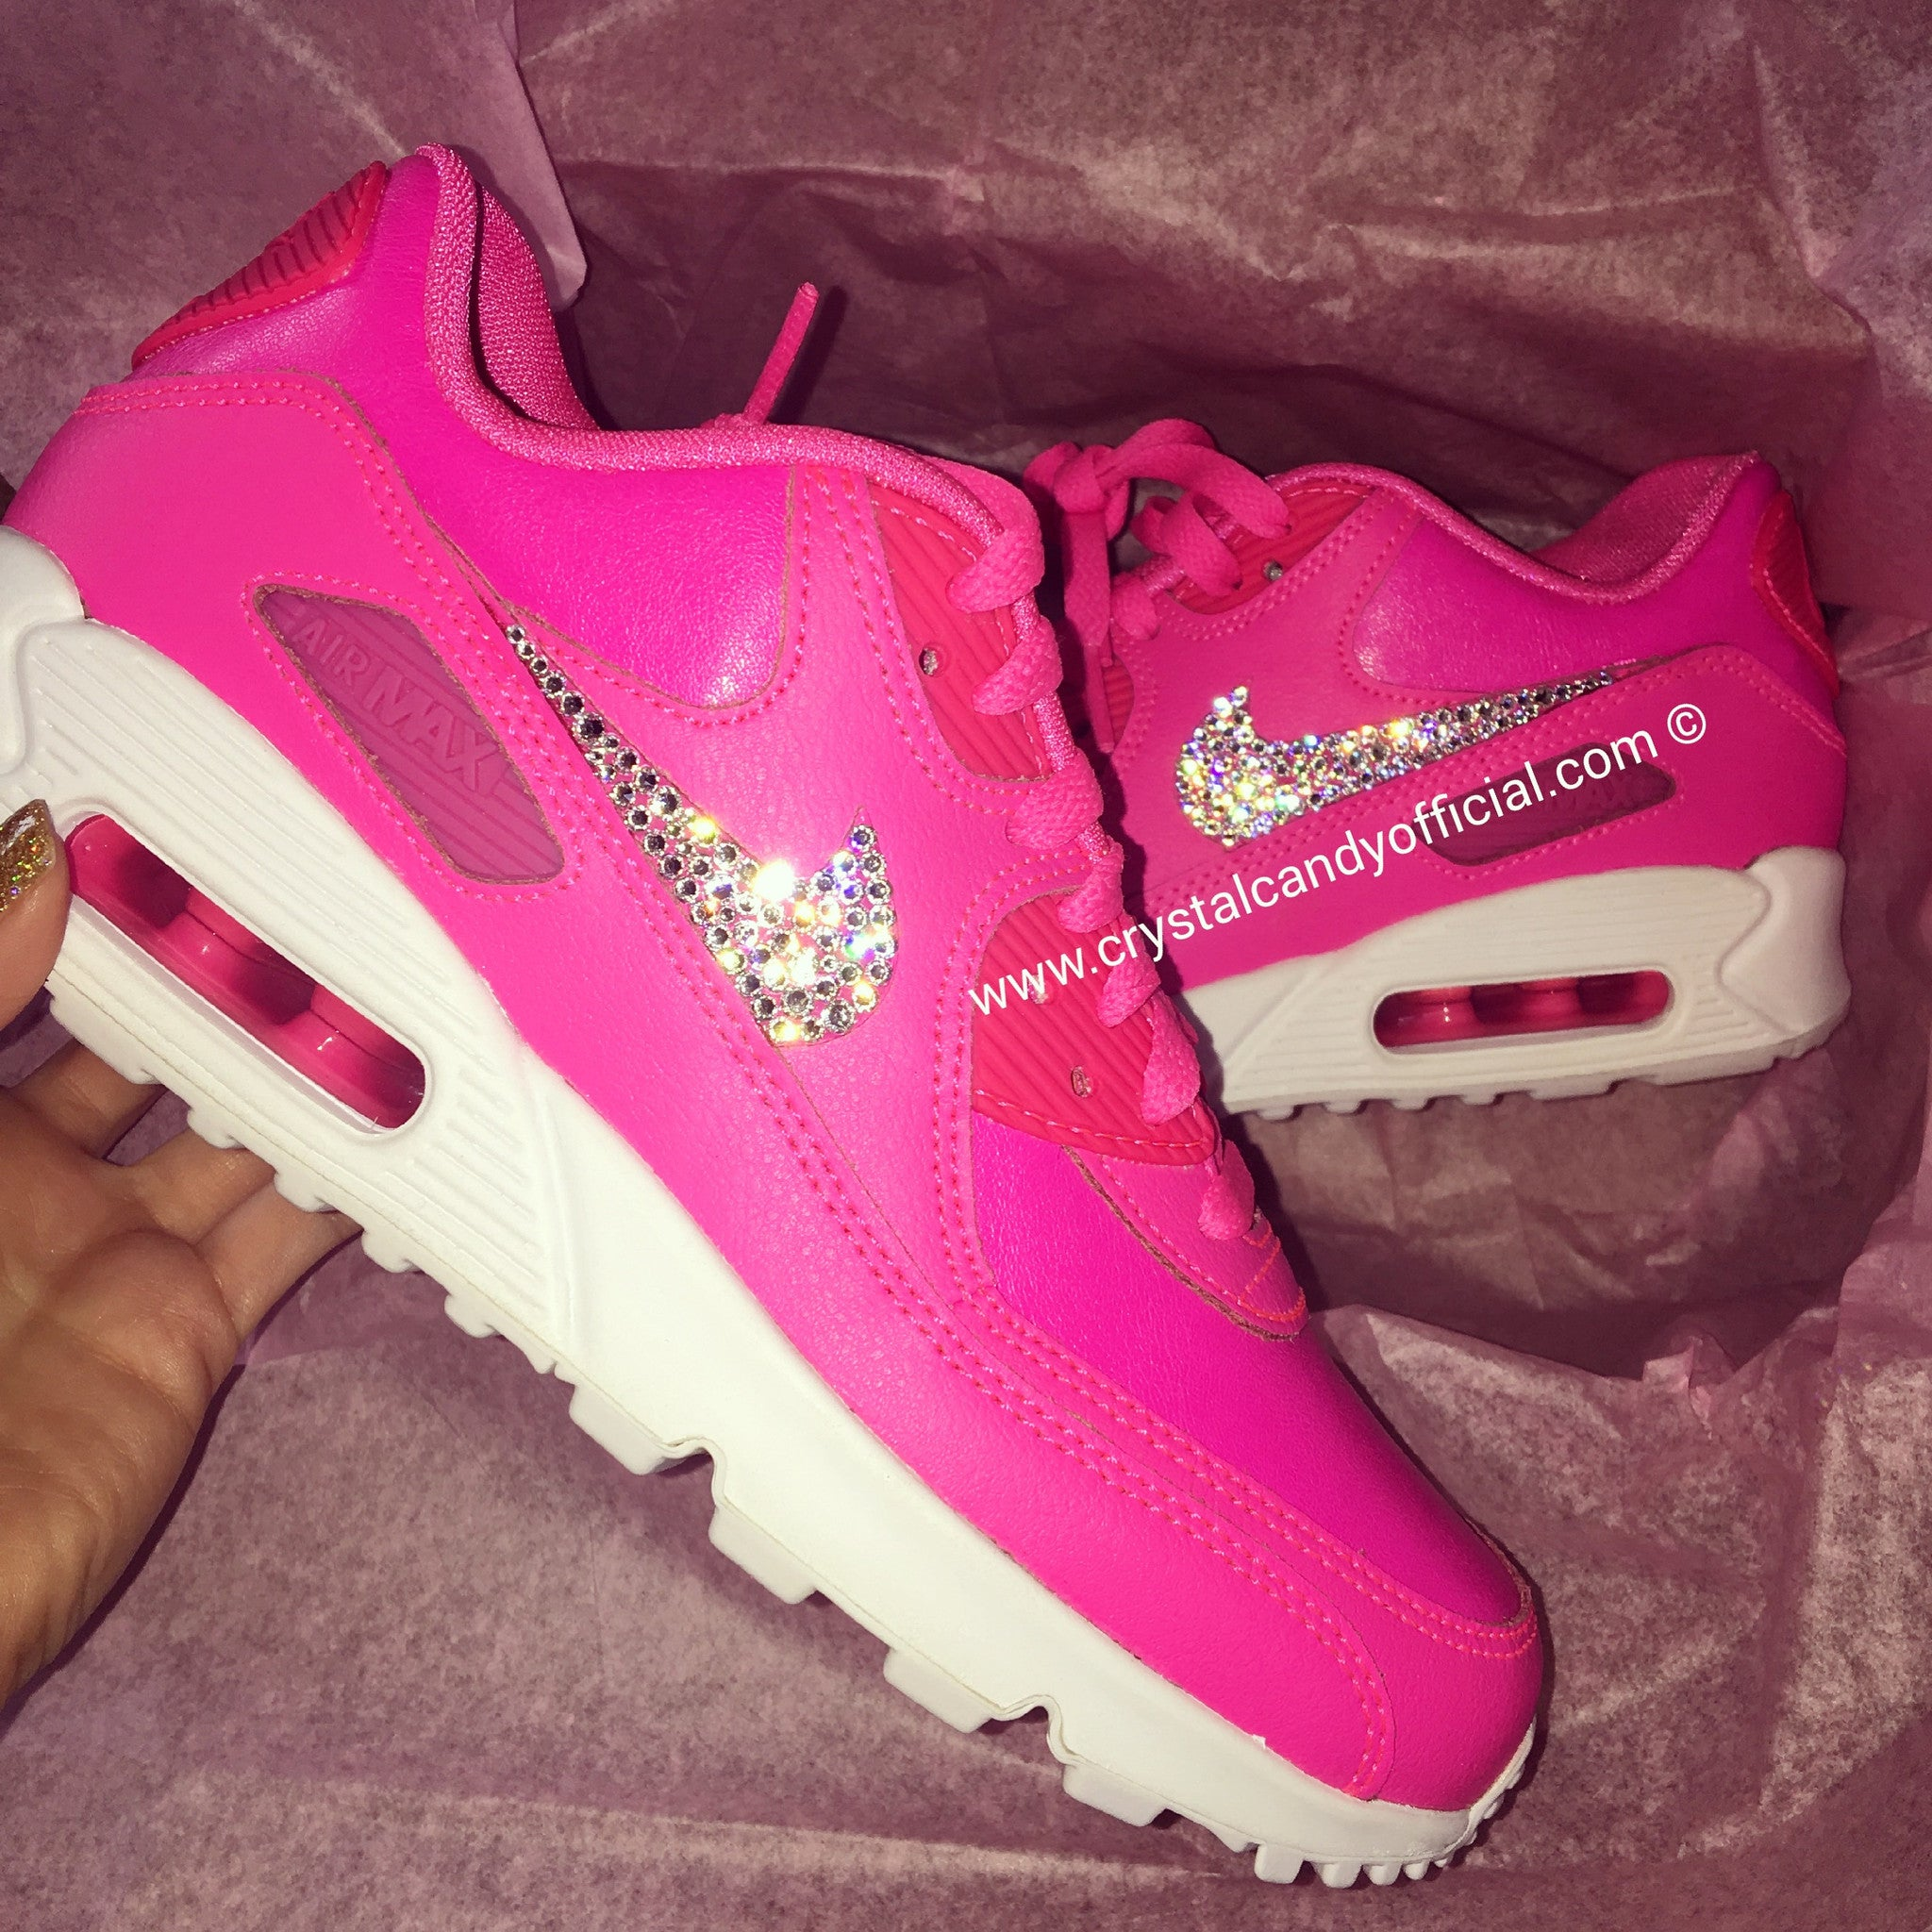 size 40 3c14f 0d572 Crystal Nike Air Max 90 s in Barbie Pink - Crystal Candy Limited